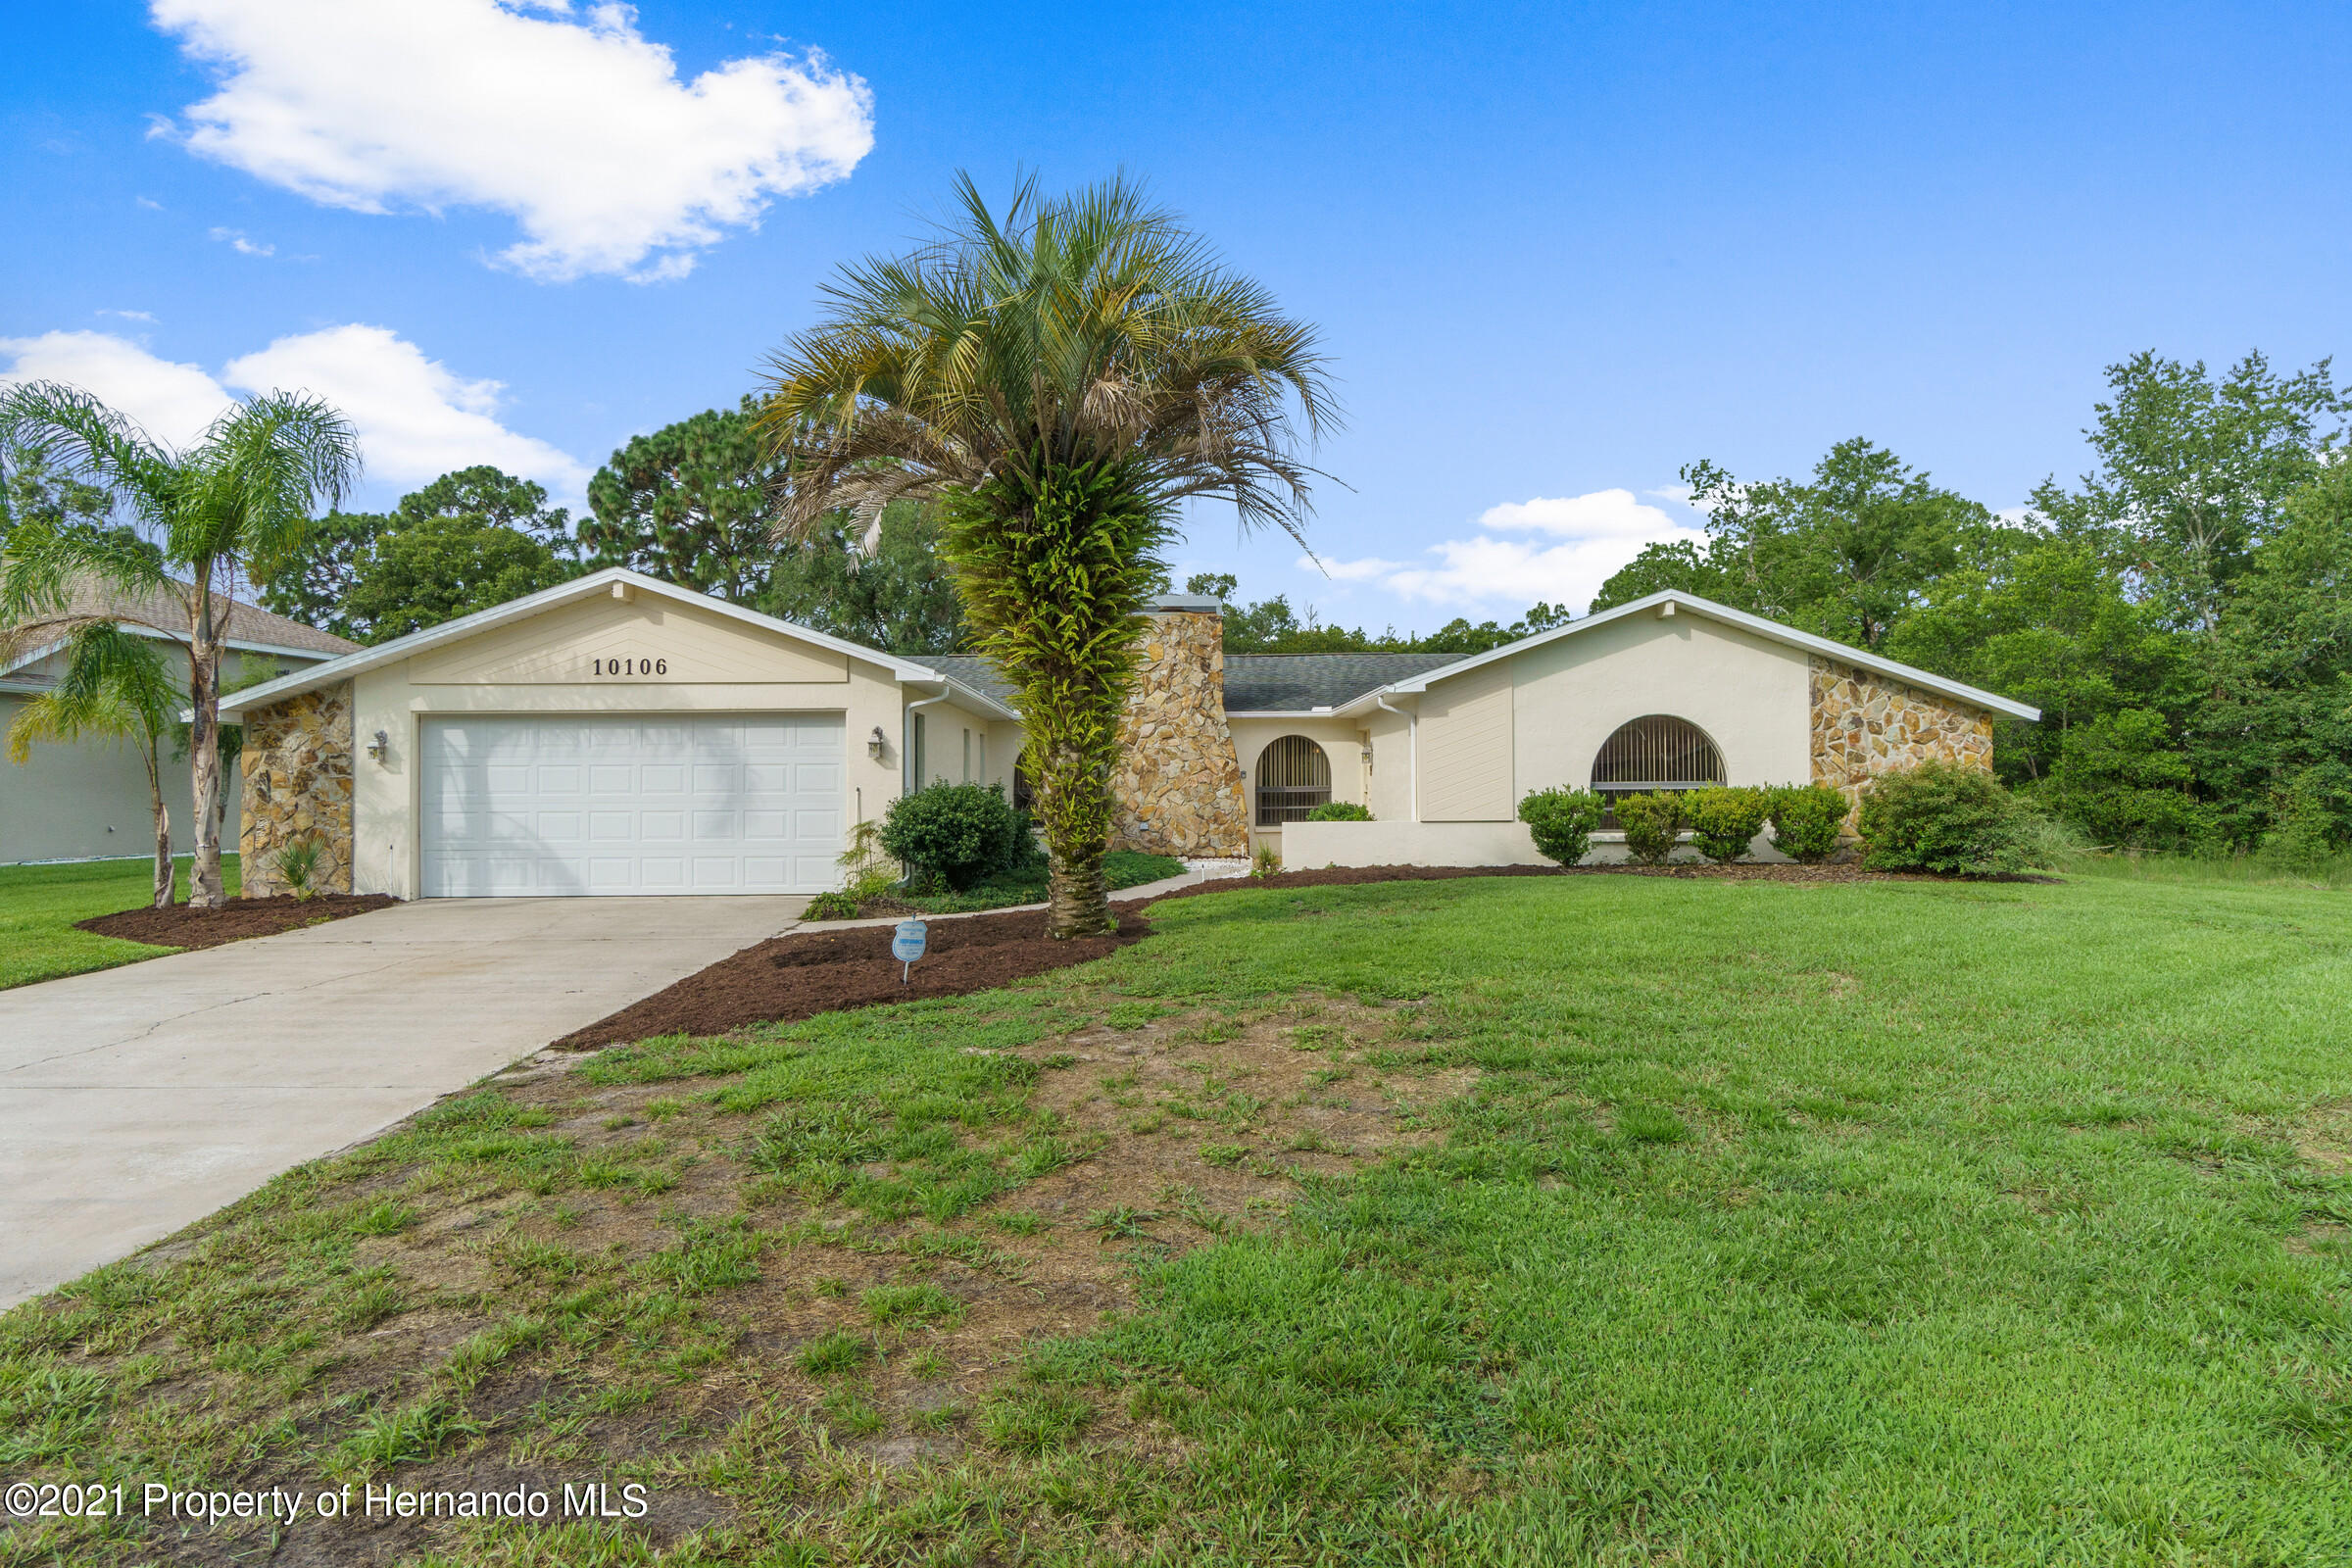 Details for 10106 Loretto Street, Spring Hill, FL 34608